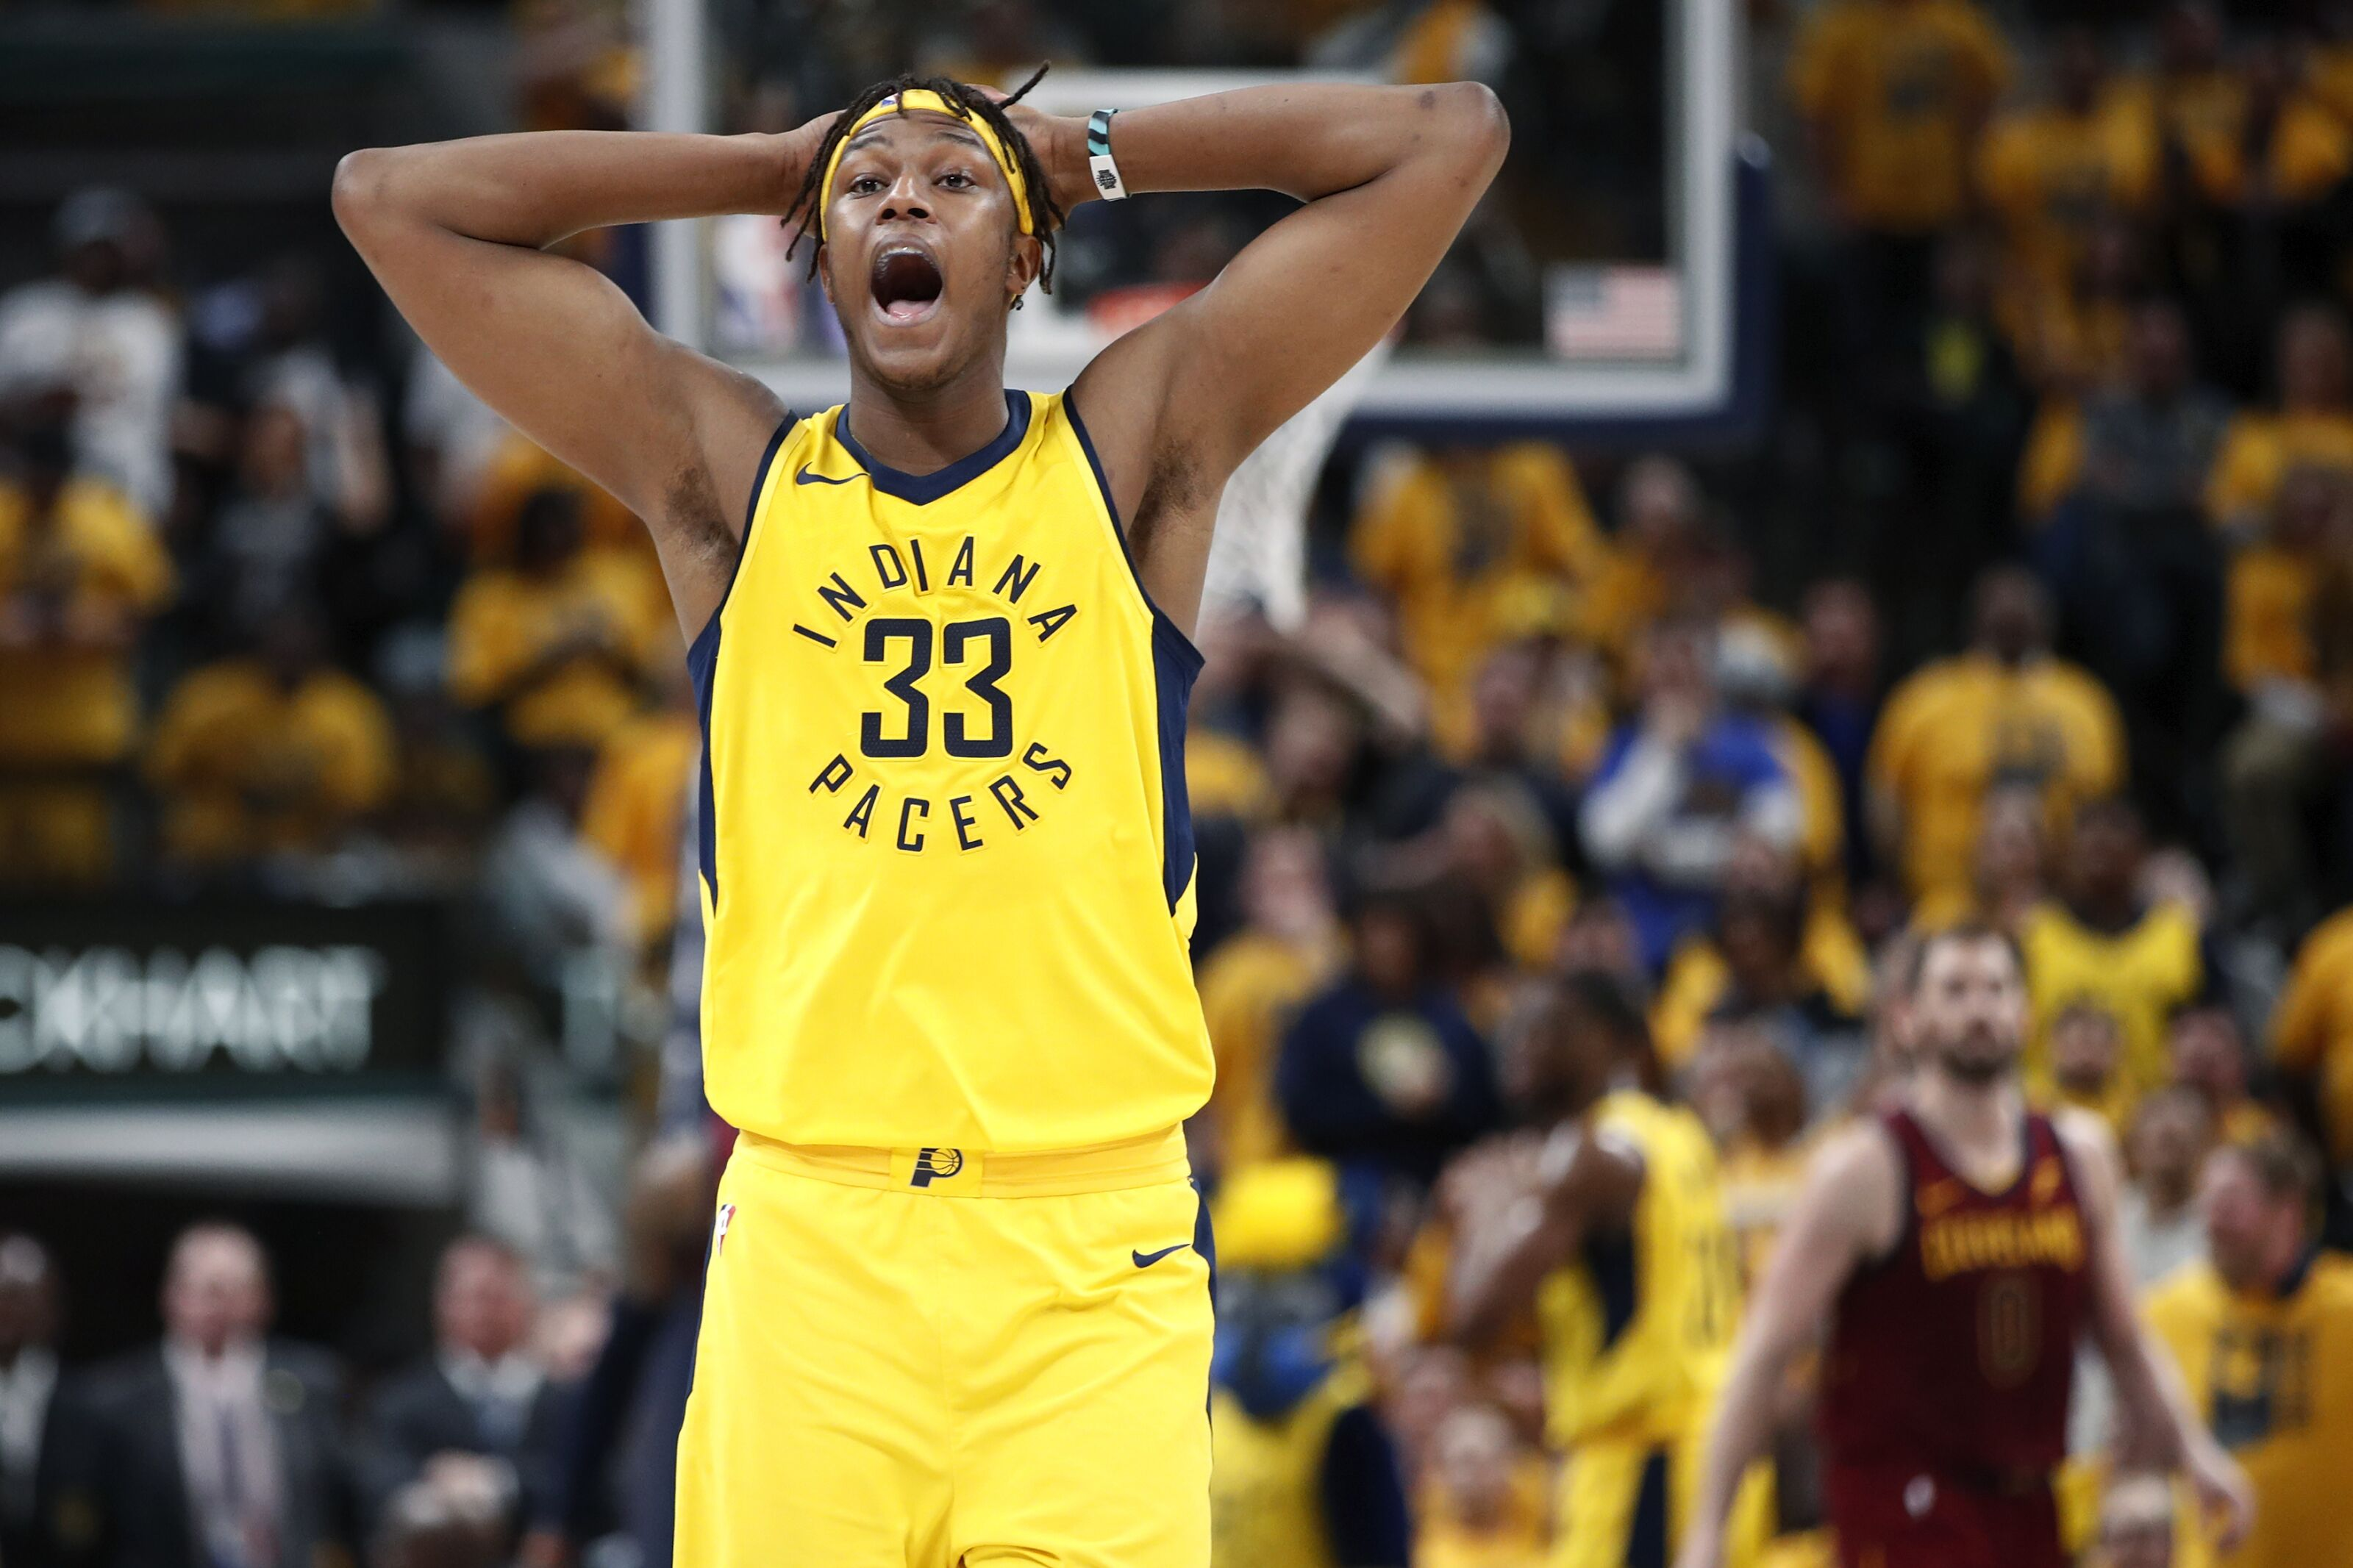 DFS NBA – The Top Salary Value Plays – Don't Fade The Beal!